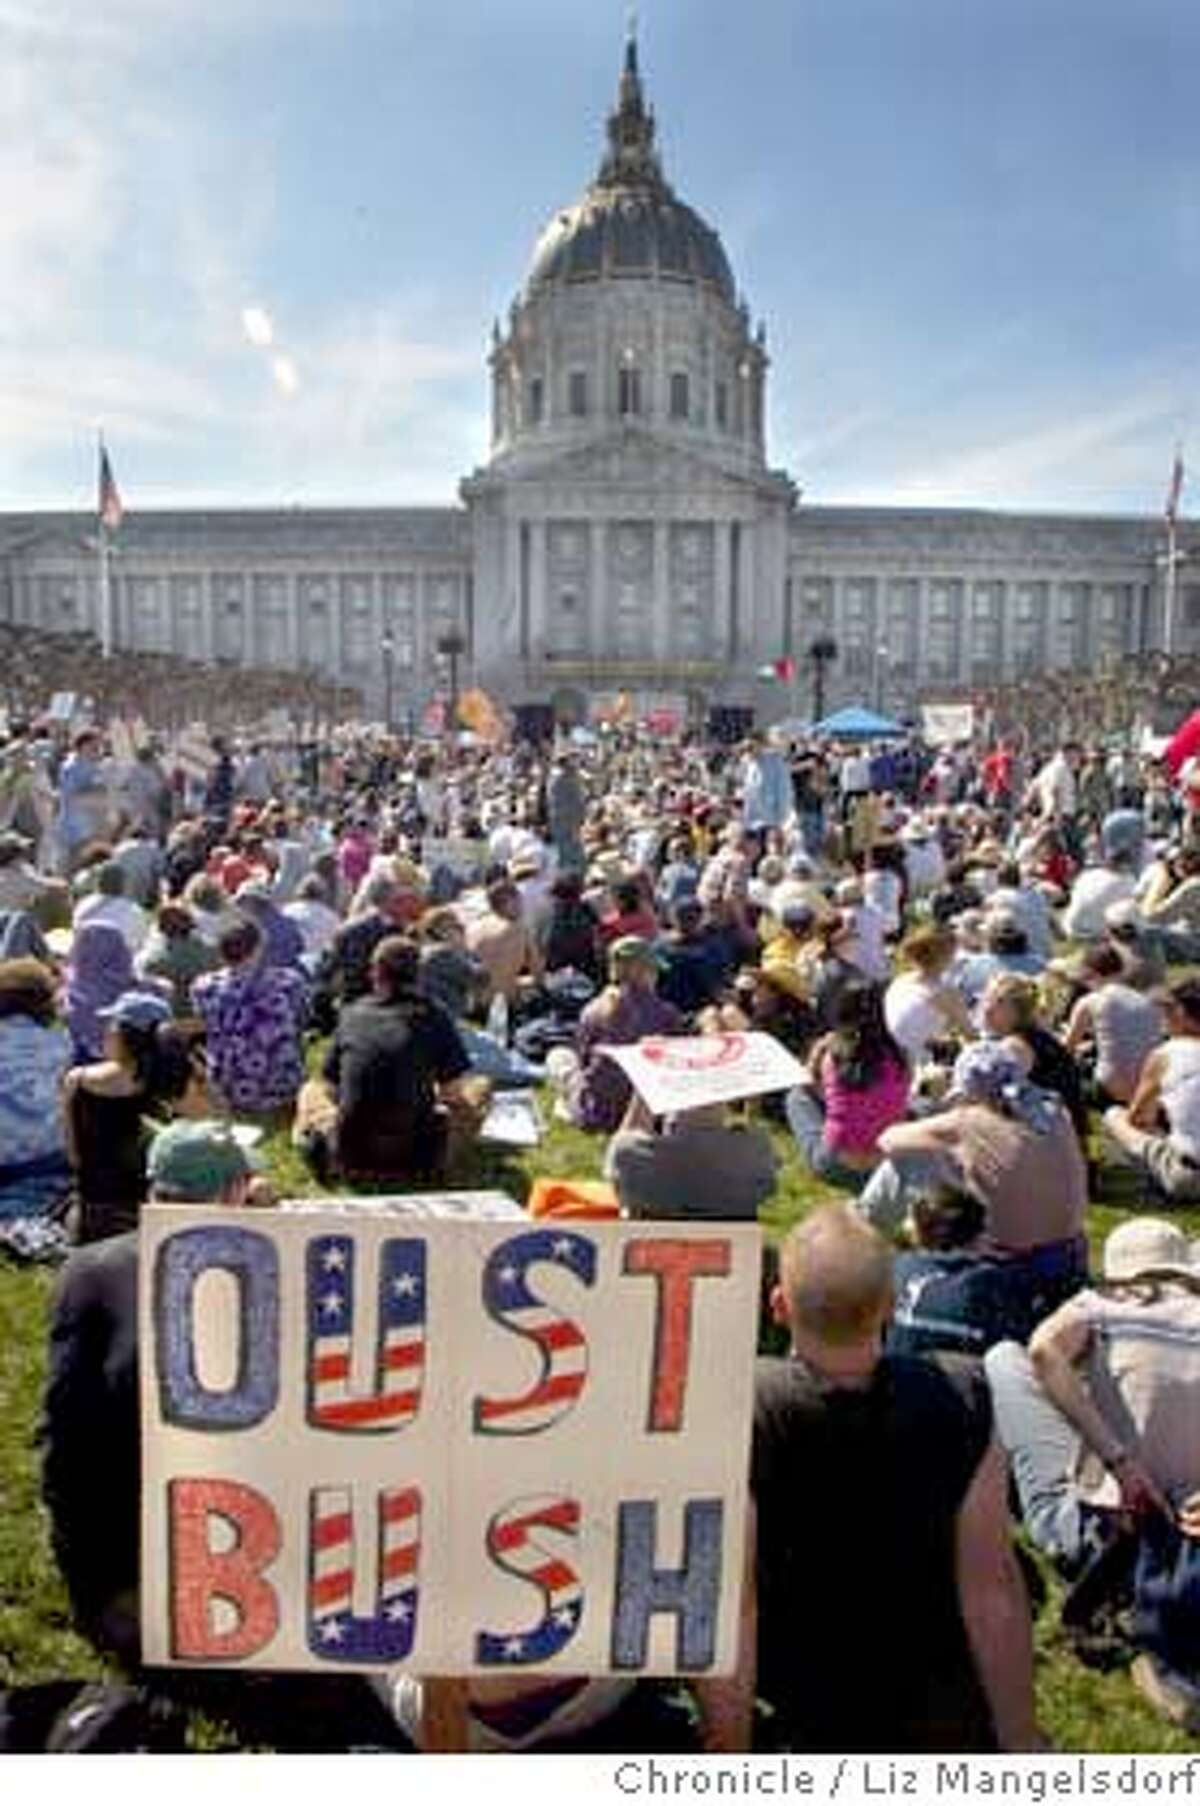 Protestors listen to speakers and music at the civic center after the march. Photo taken on 03/20/04 in San Francisco, CA Photo by Liz Mangelsdorf/ The San Francisco Chronicle.